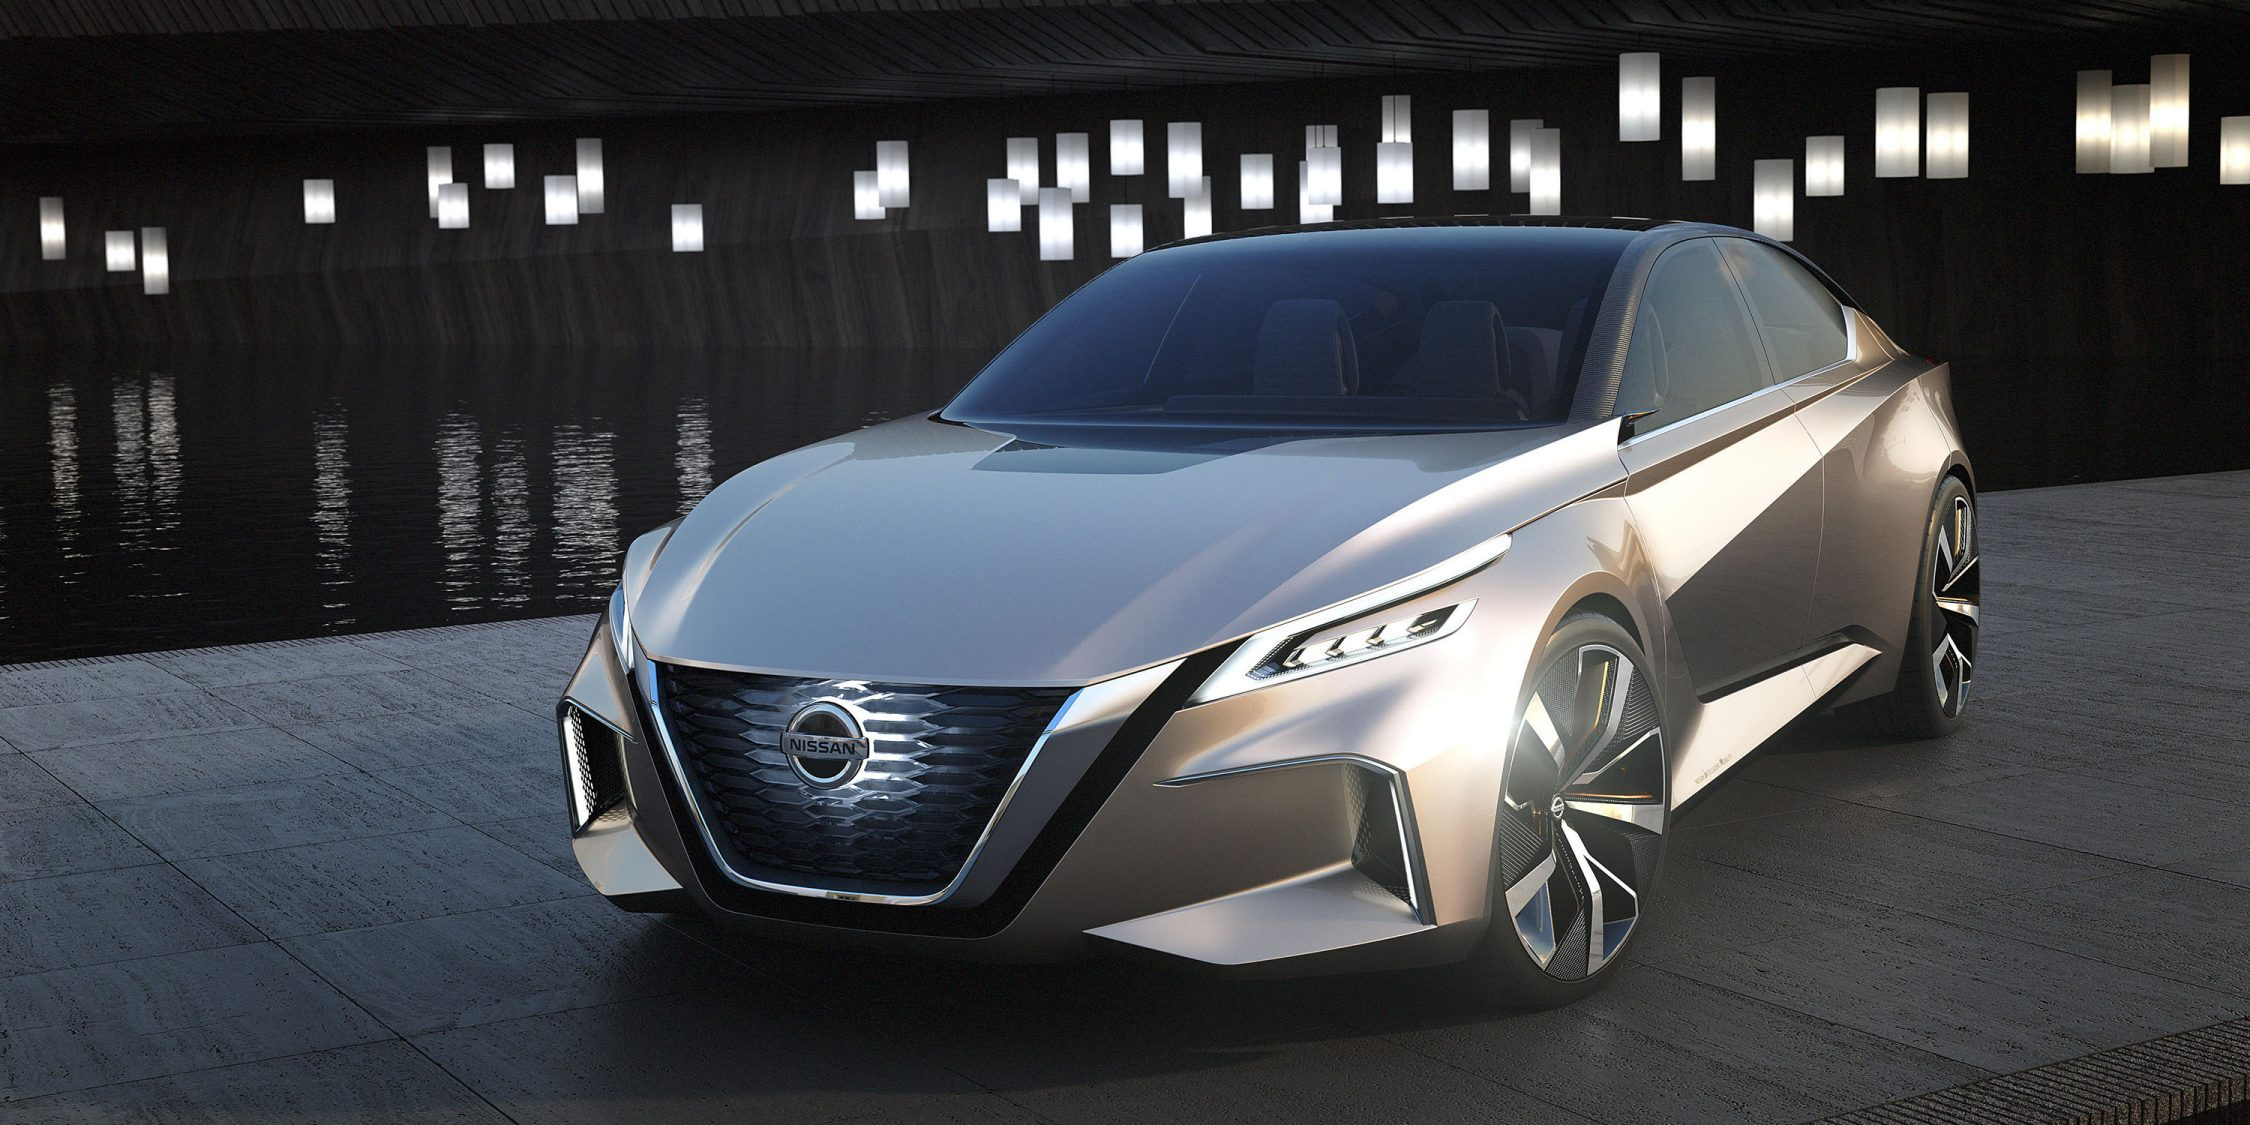 Nissan Vmotion 2.0 Concept 3/4 front at night